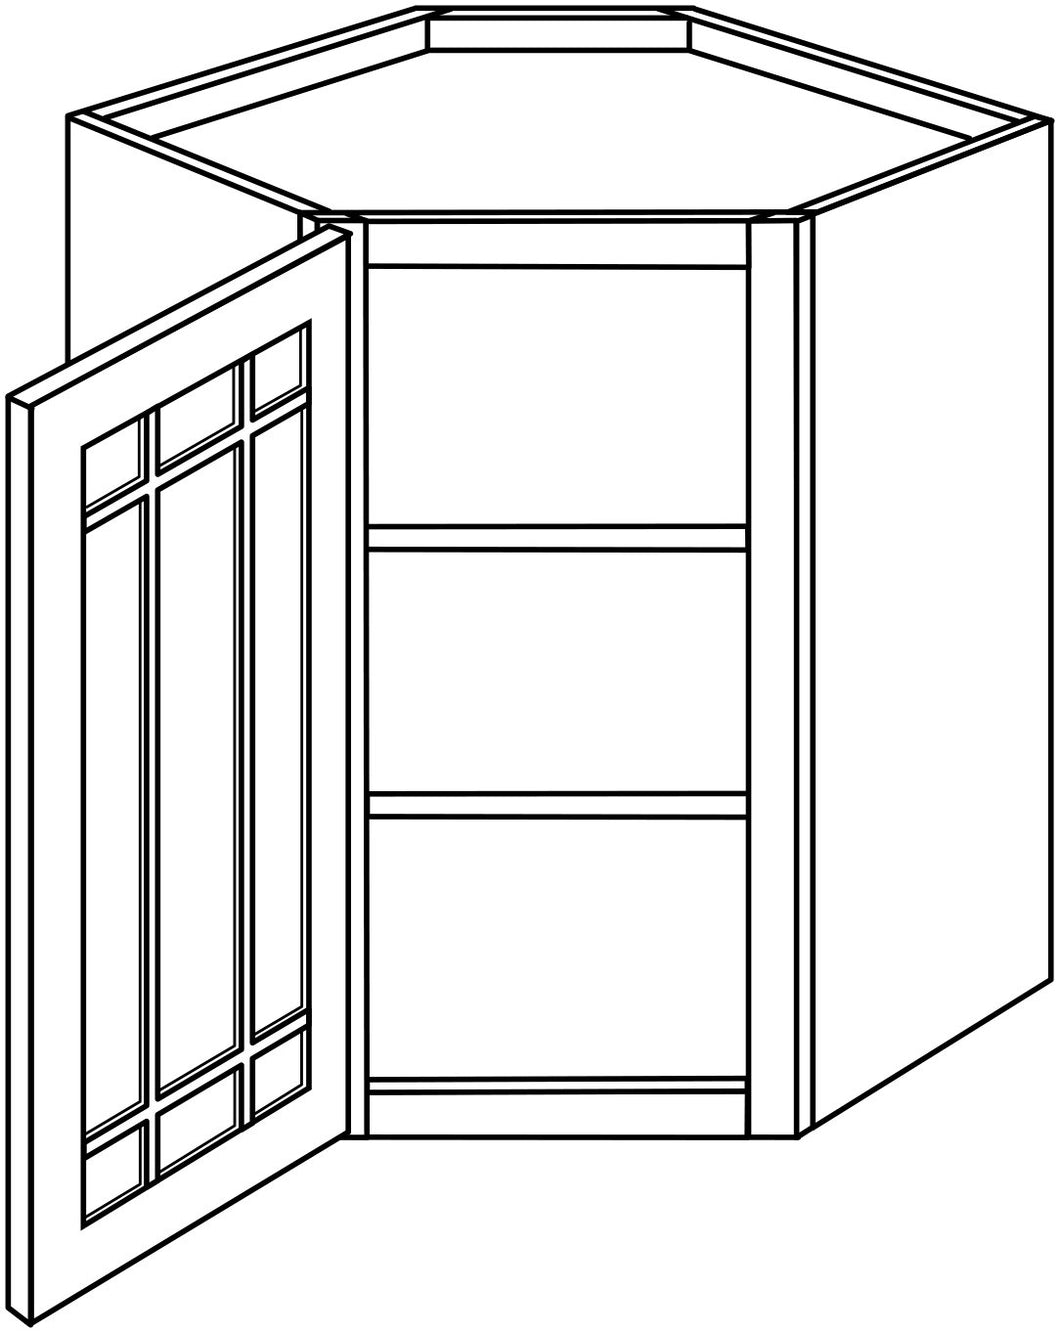 DOVER WALL CABINETS WITH GLASS DOORS: 30